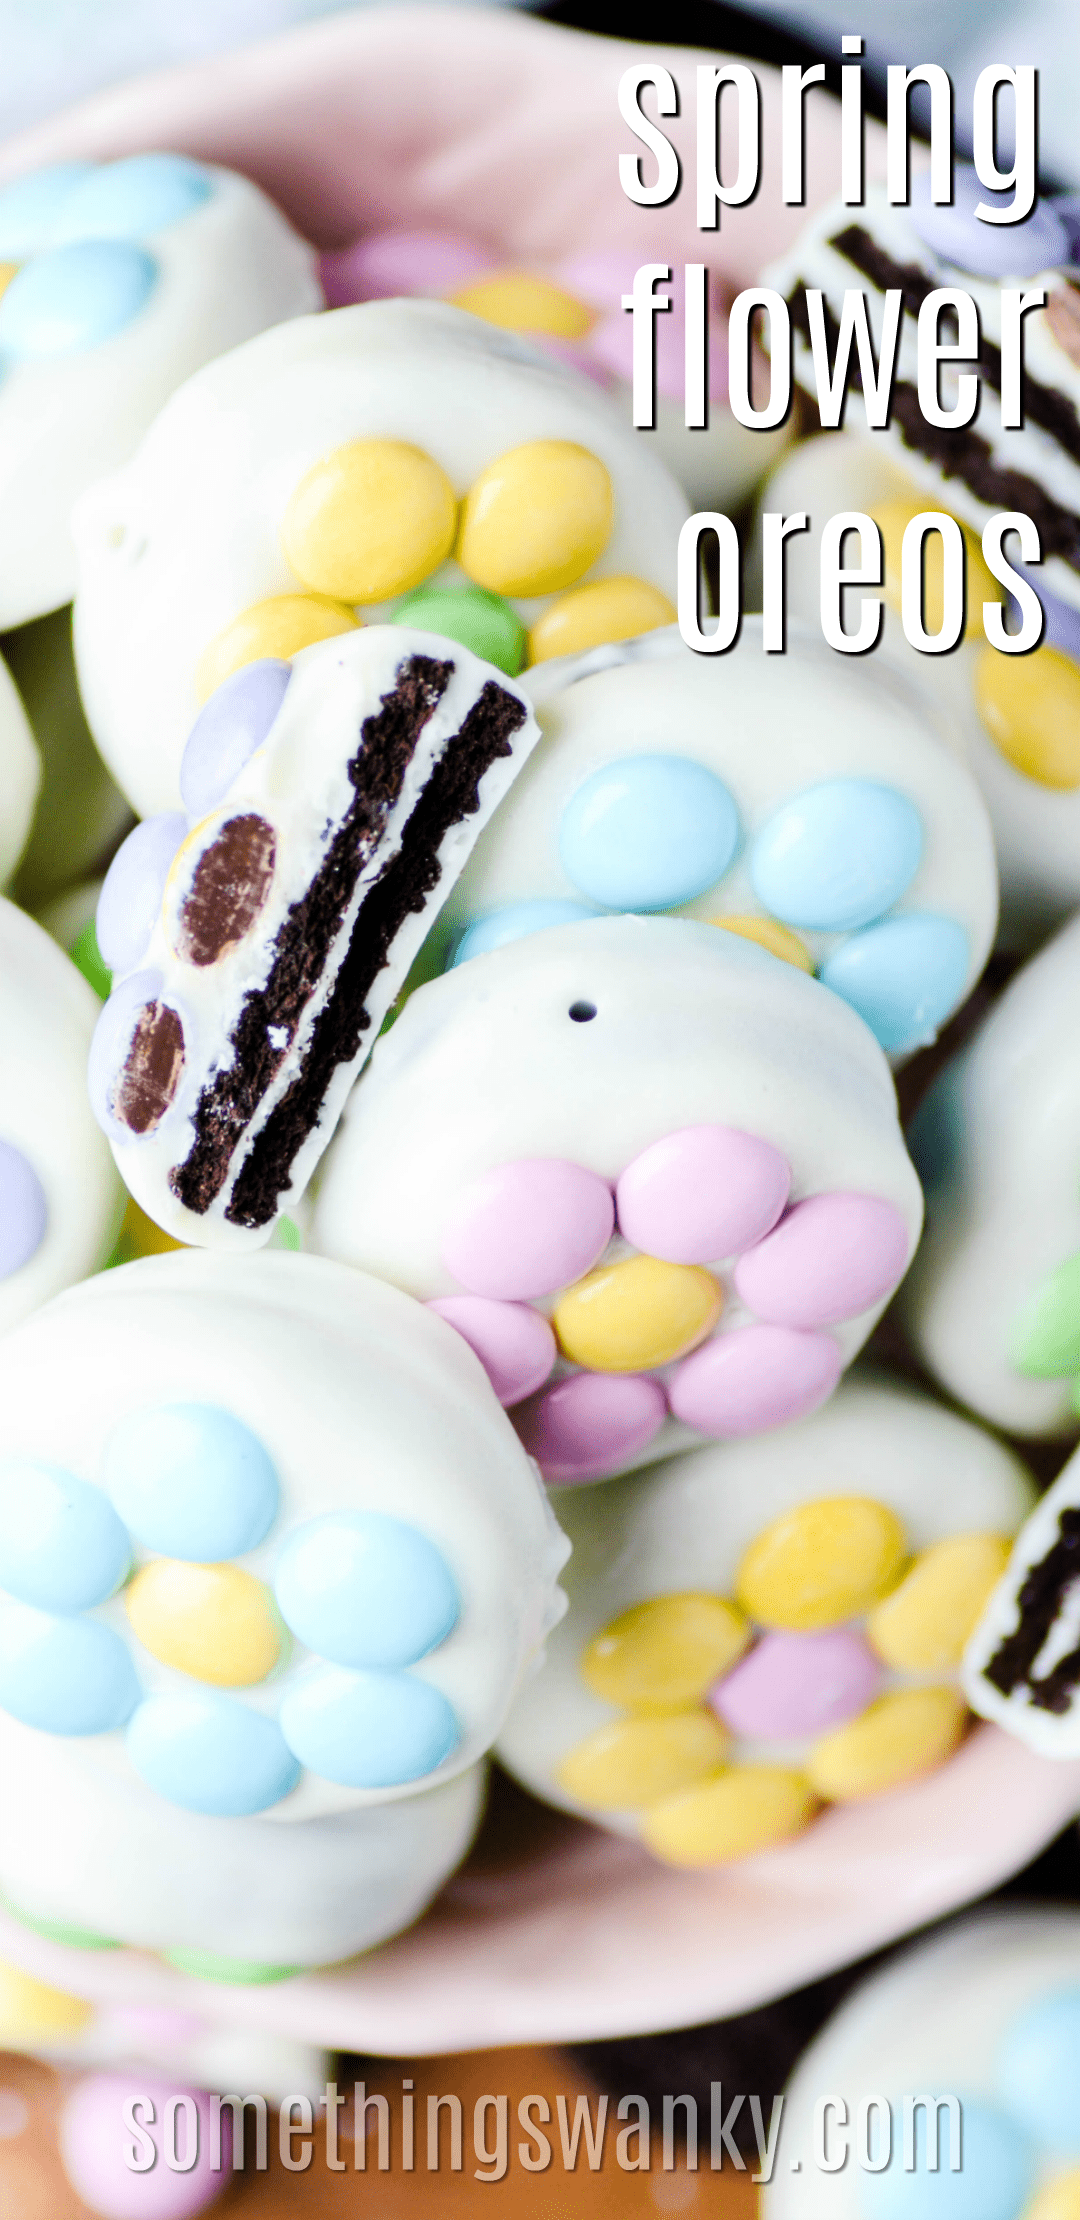 These white chocolate covered Oreos are decorated with spring flowers made out of M&MS. Easy to make, so cute, and delicious too!